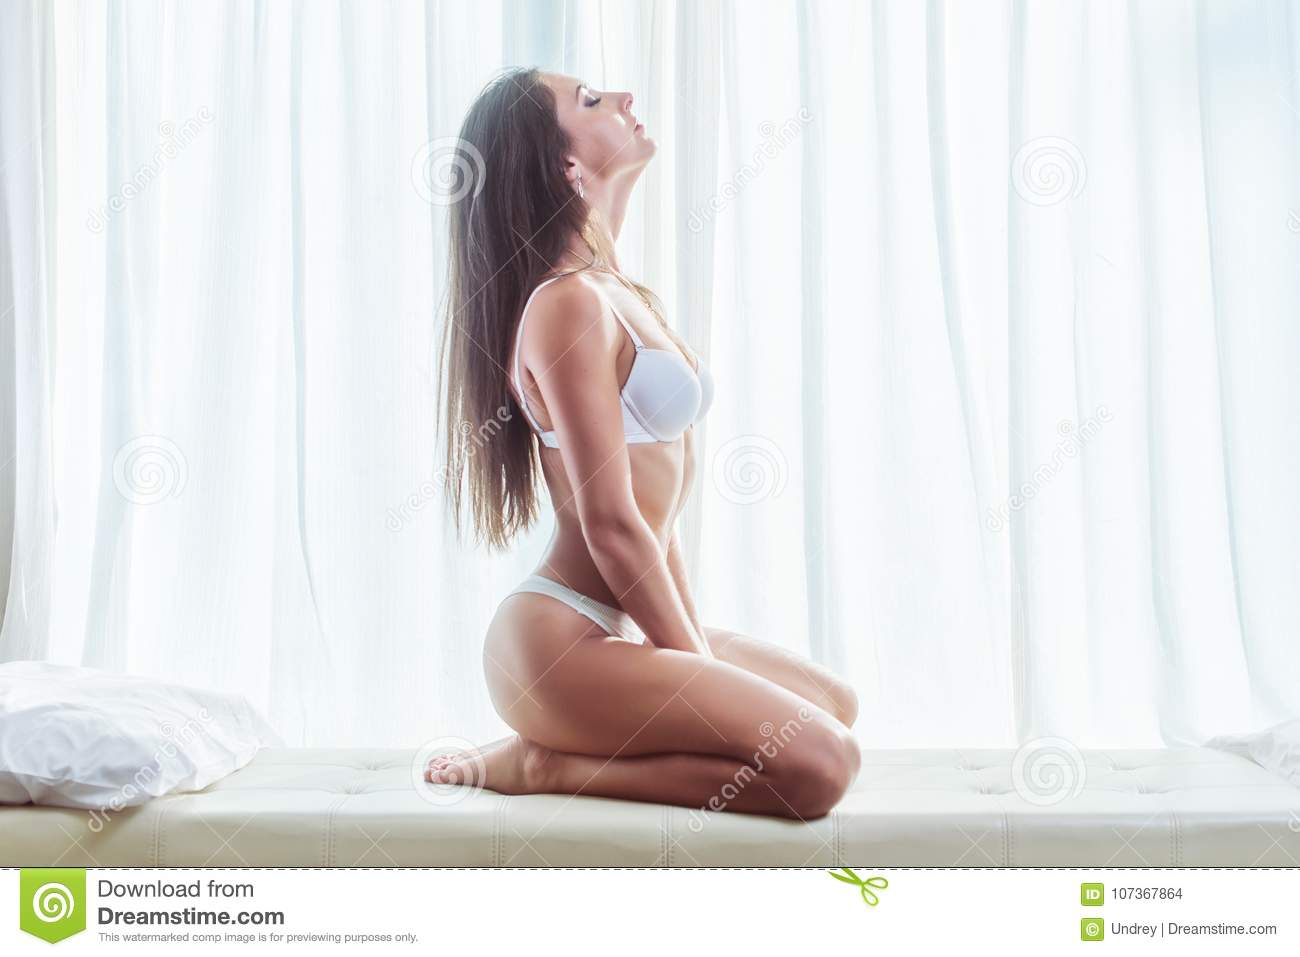 Side view of young brunette woman wearing lingerie sitting on white bed with window and curtains in background